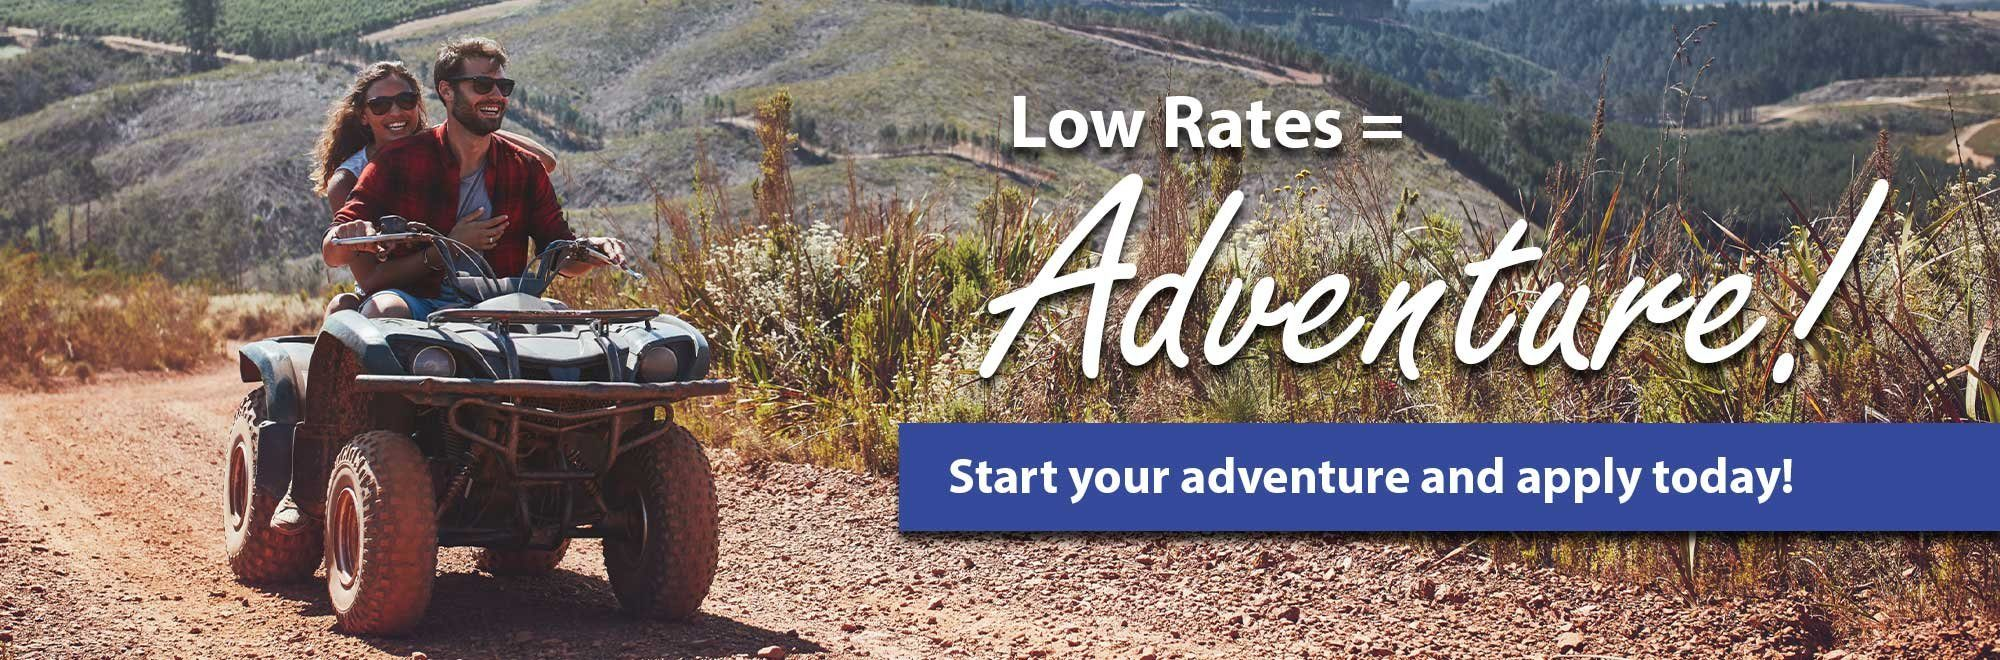 Low Rates = Adventure Stare your adventure and apply today!